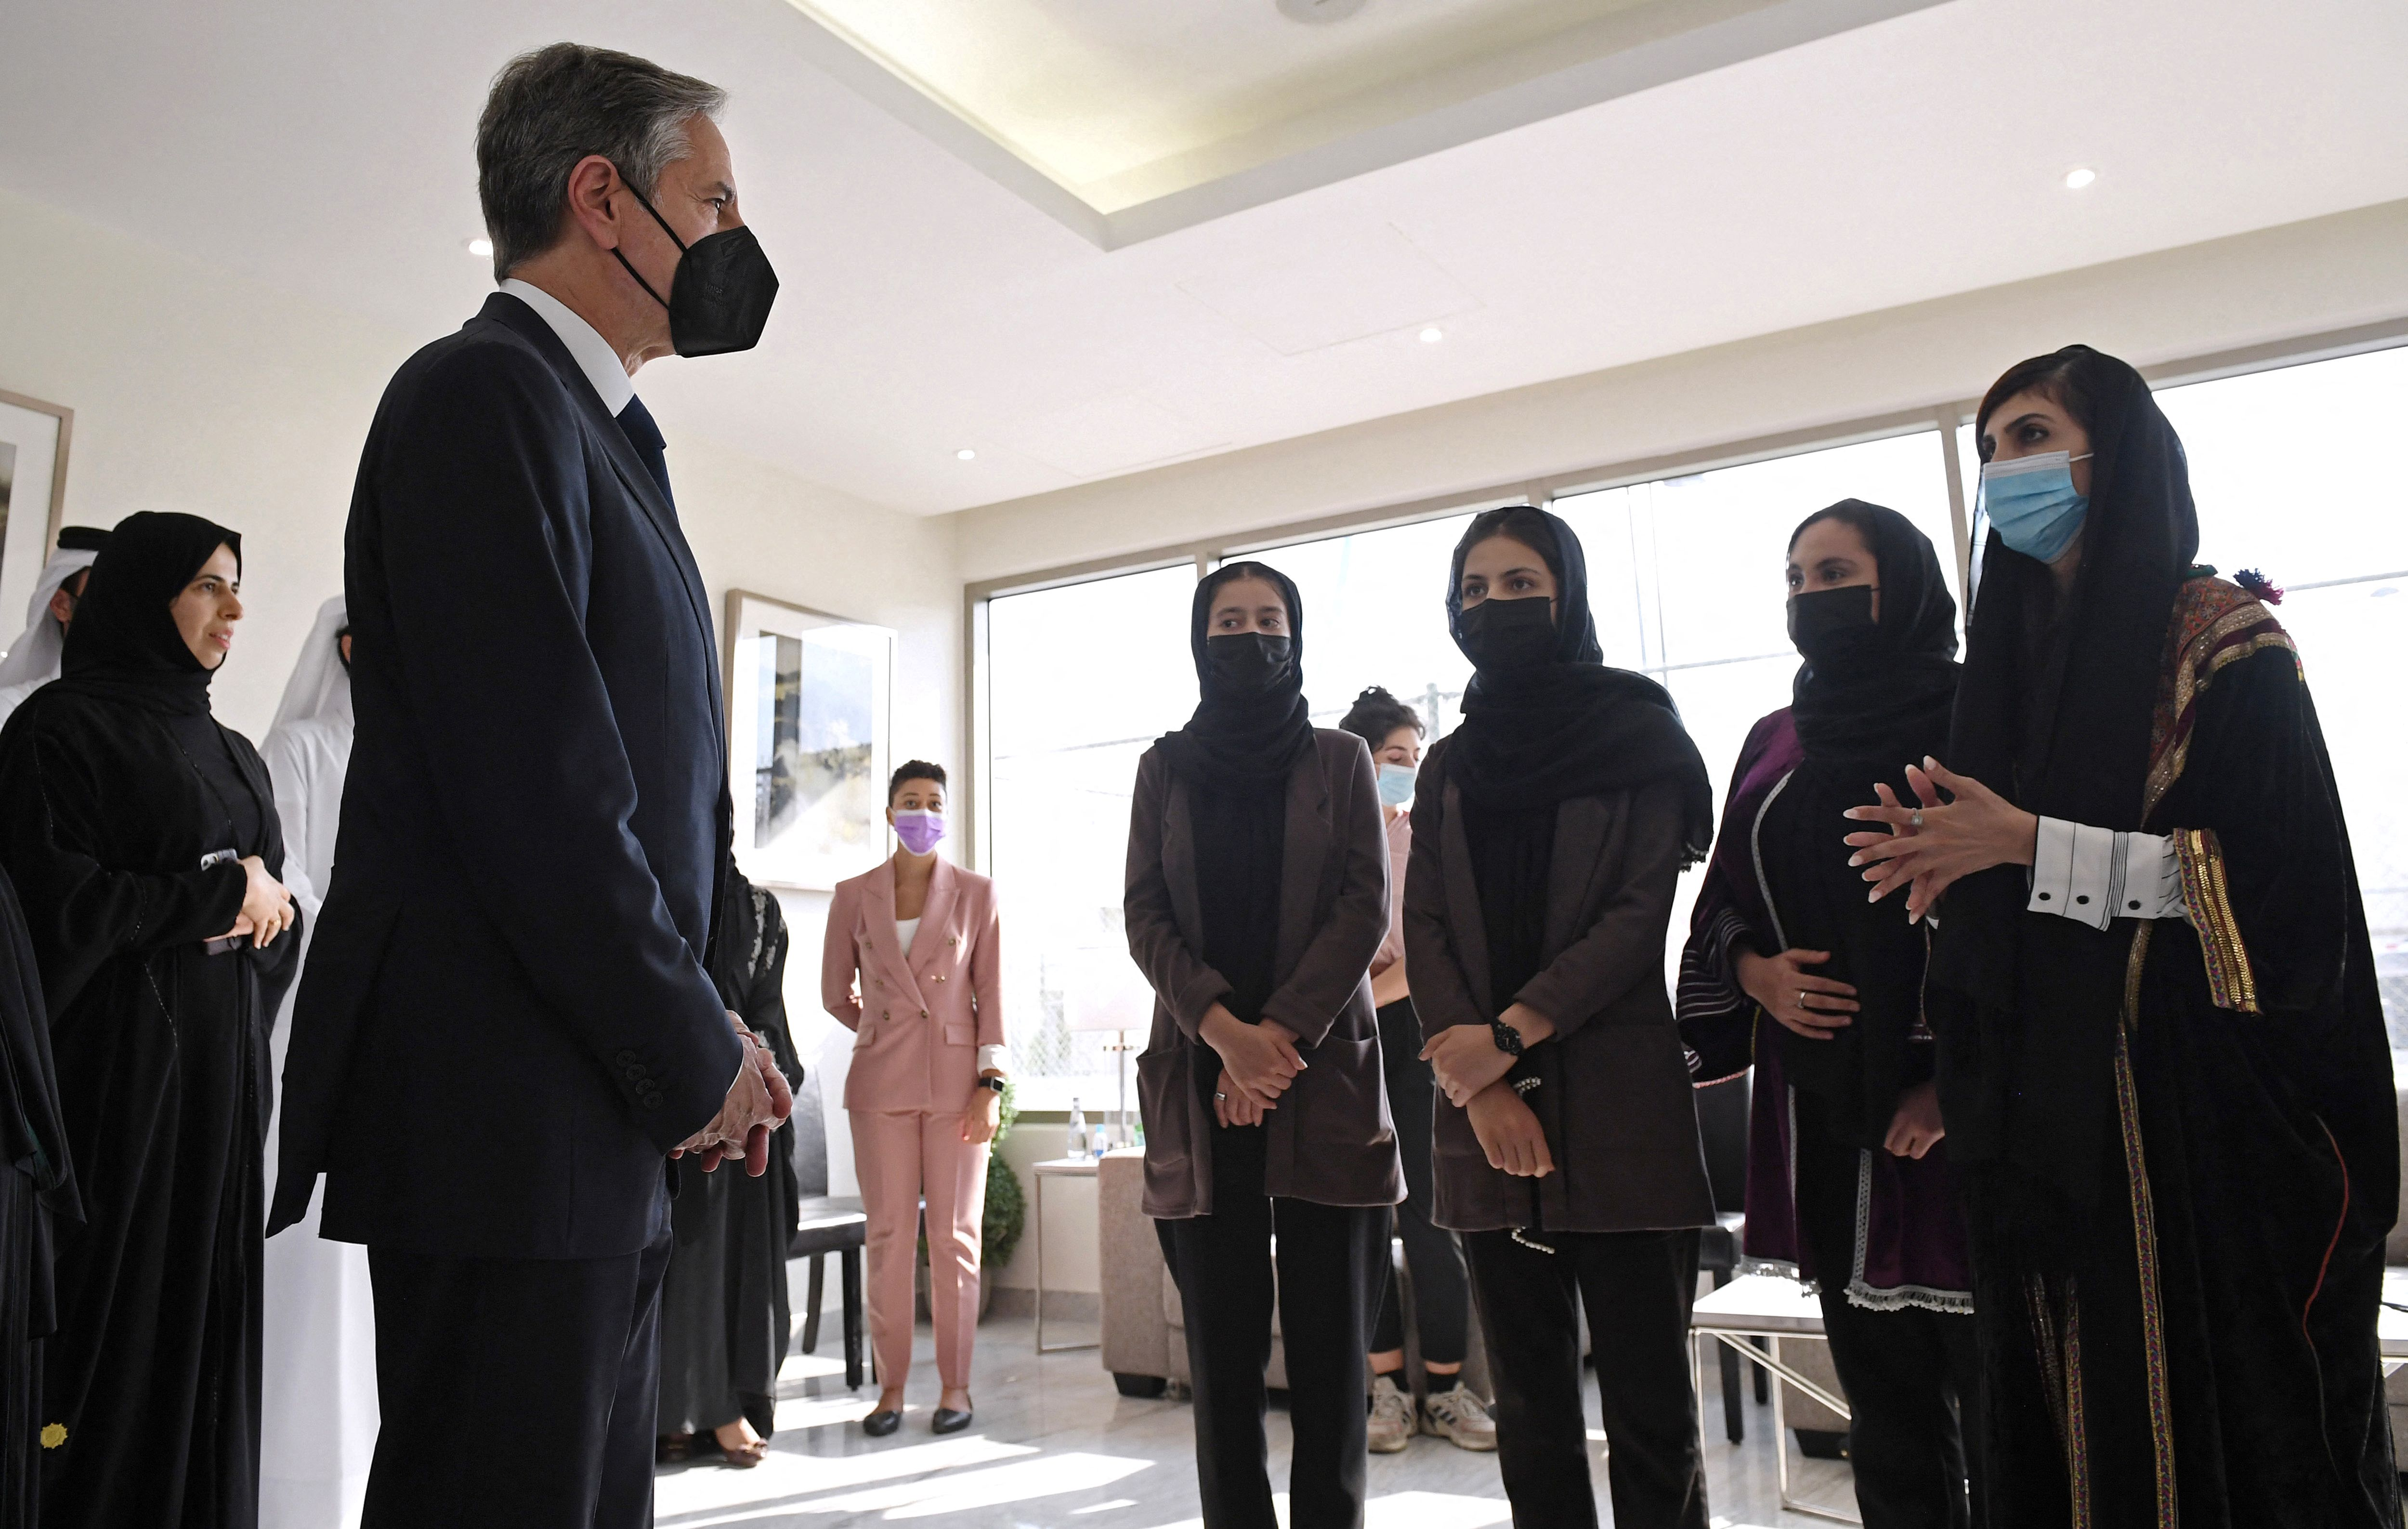 U.S. Secretary of State Antony Blinken meets with Afghan all-female robotics team members at Qatar's Education City Club House in Doha. (Photo by OLIVIER DOULIERY/POOL/AFP via Getty Images)